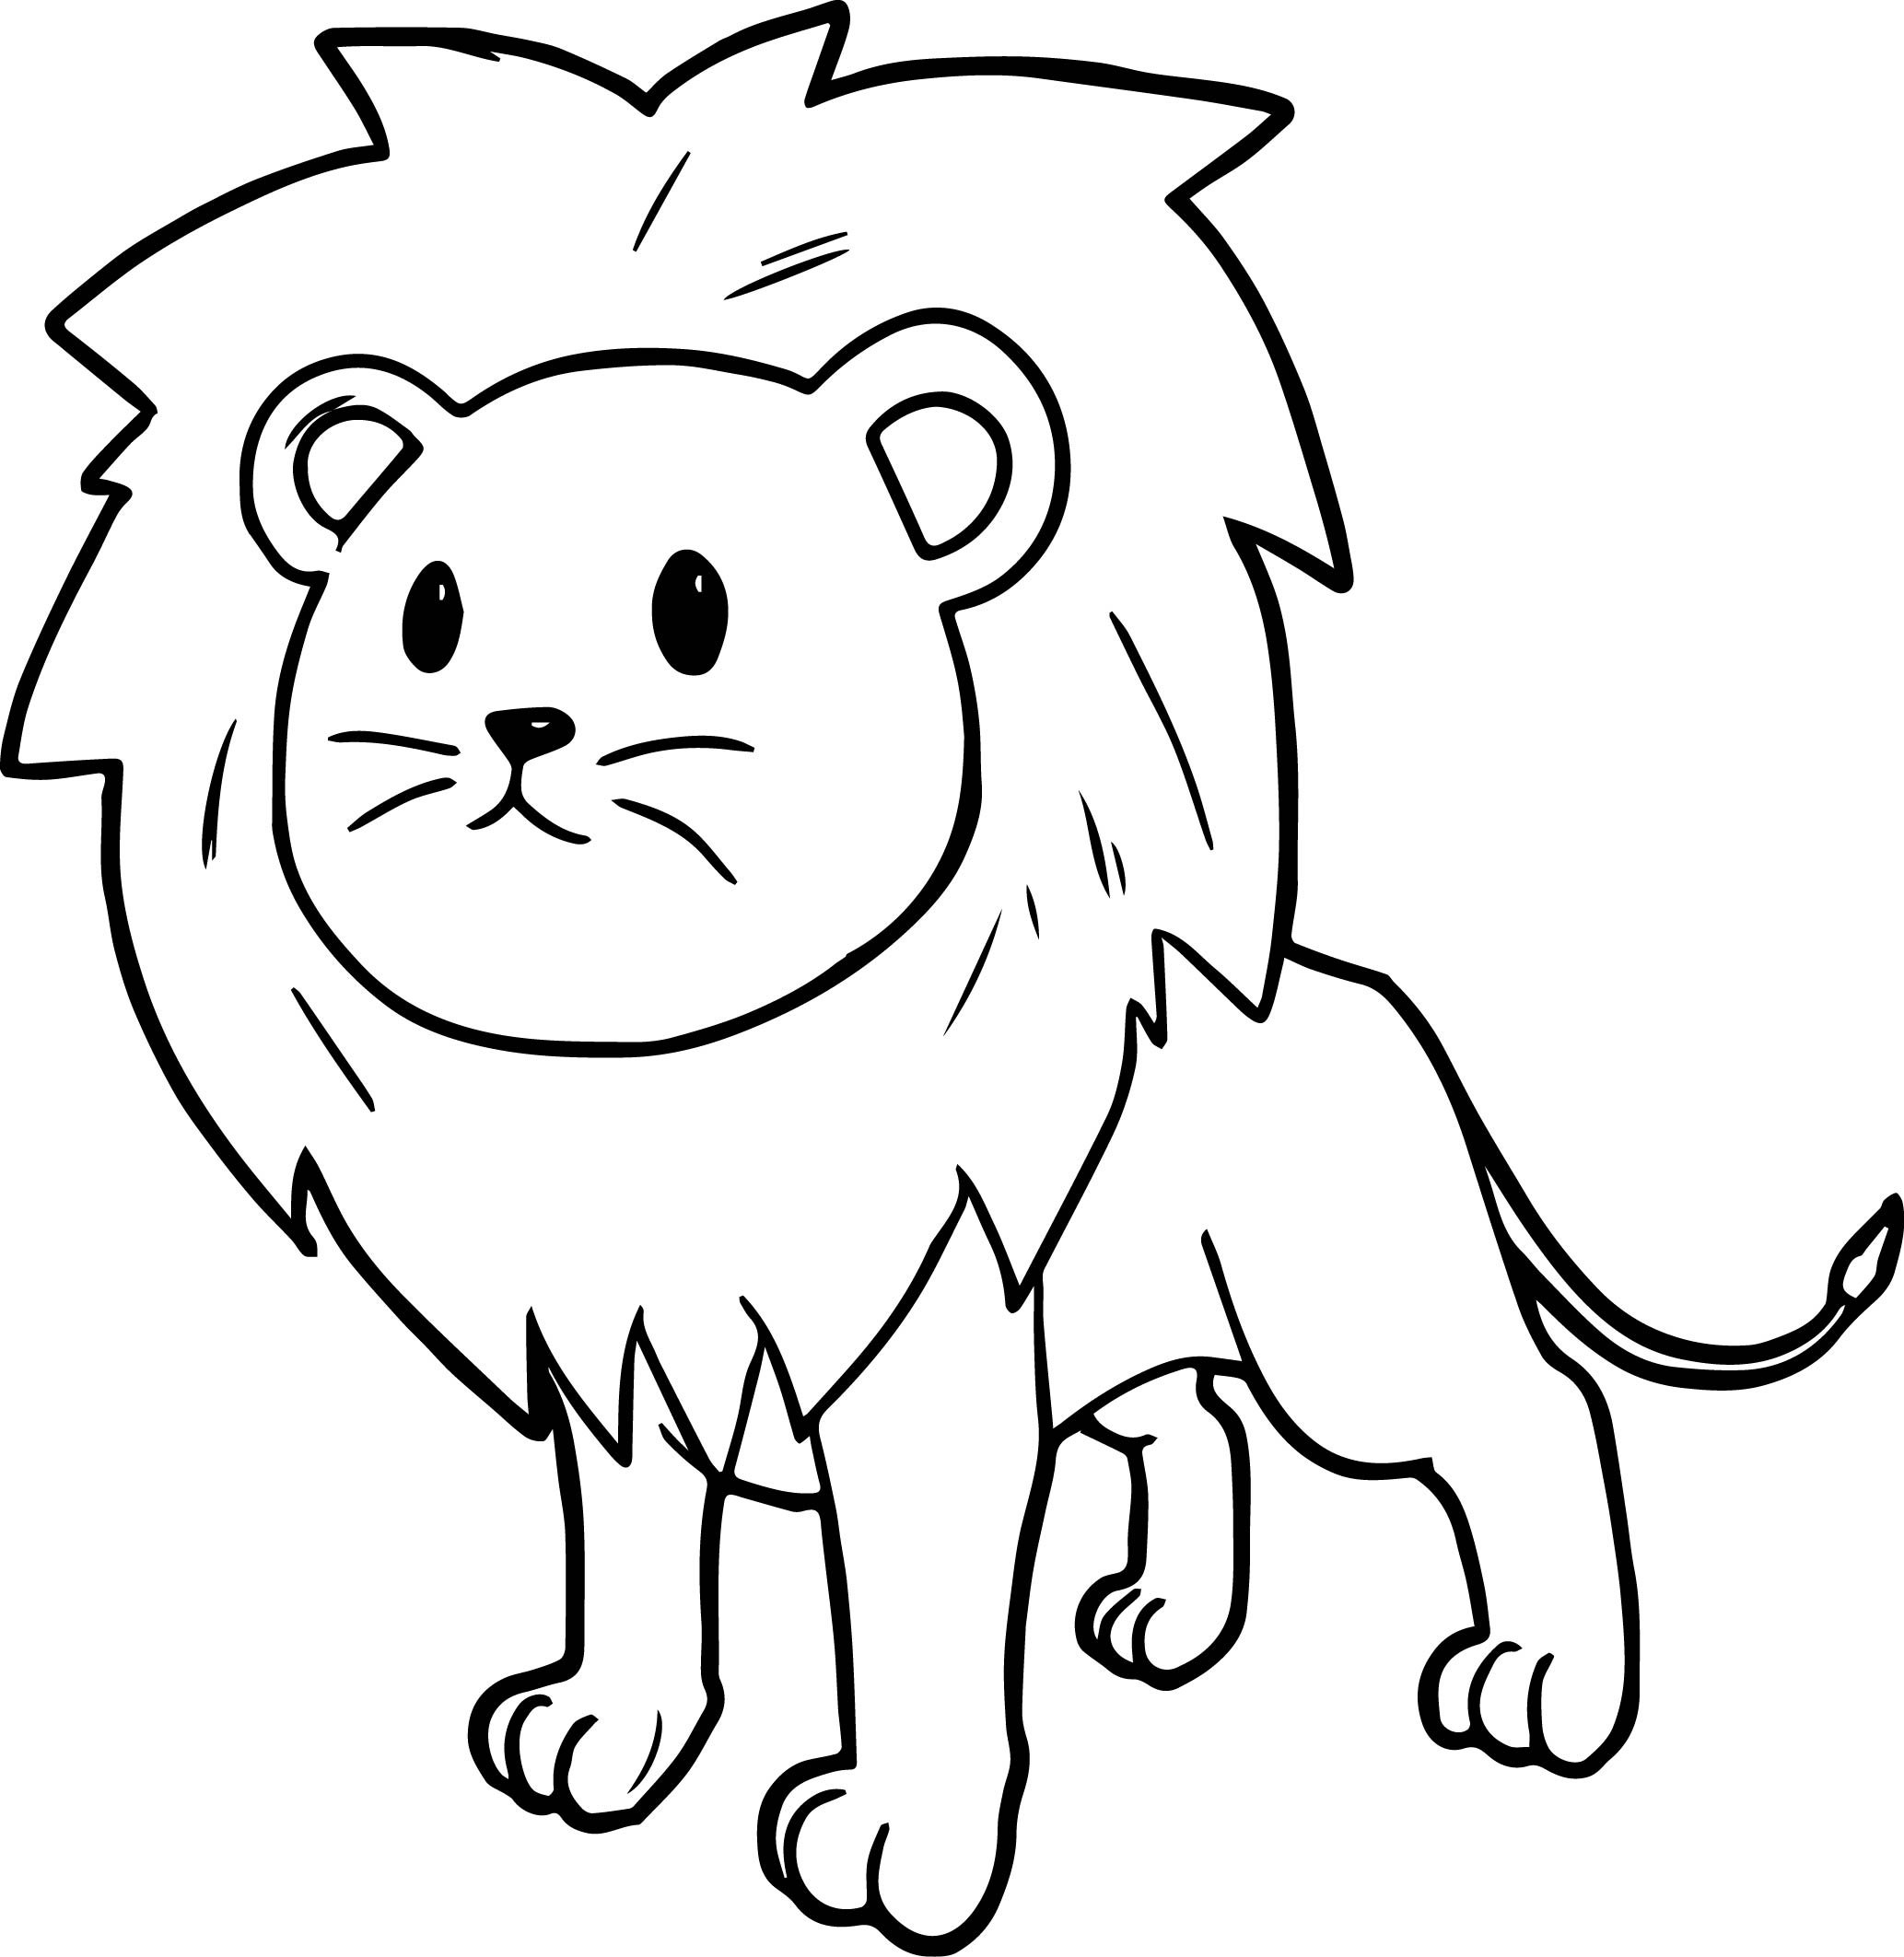 picture of a lion to color lion coloring pages clipart panda free clipart images color a picture to of lion